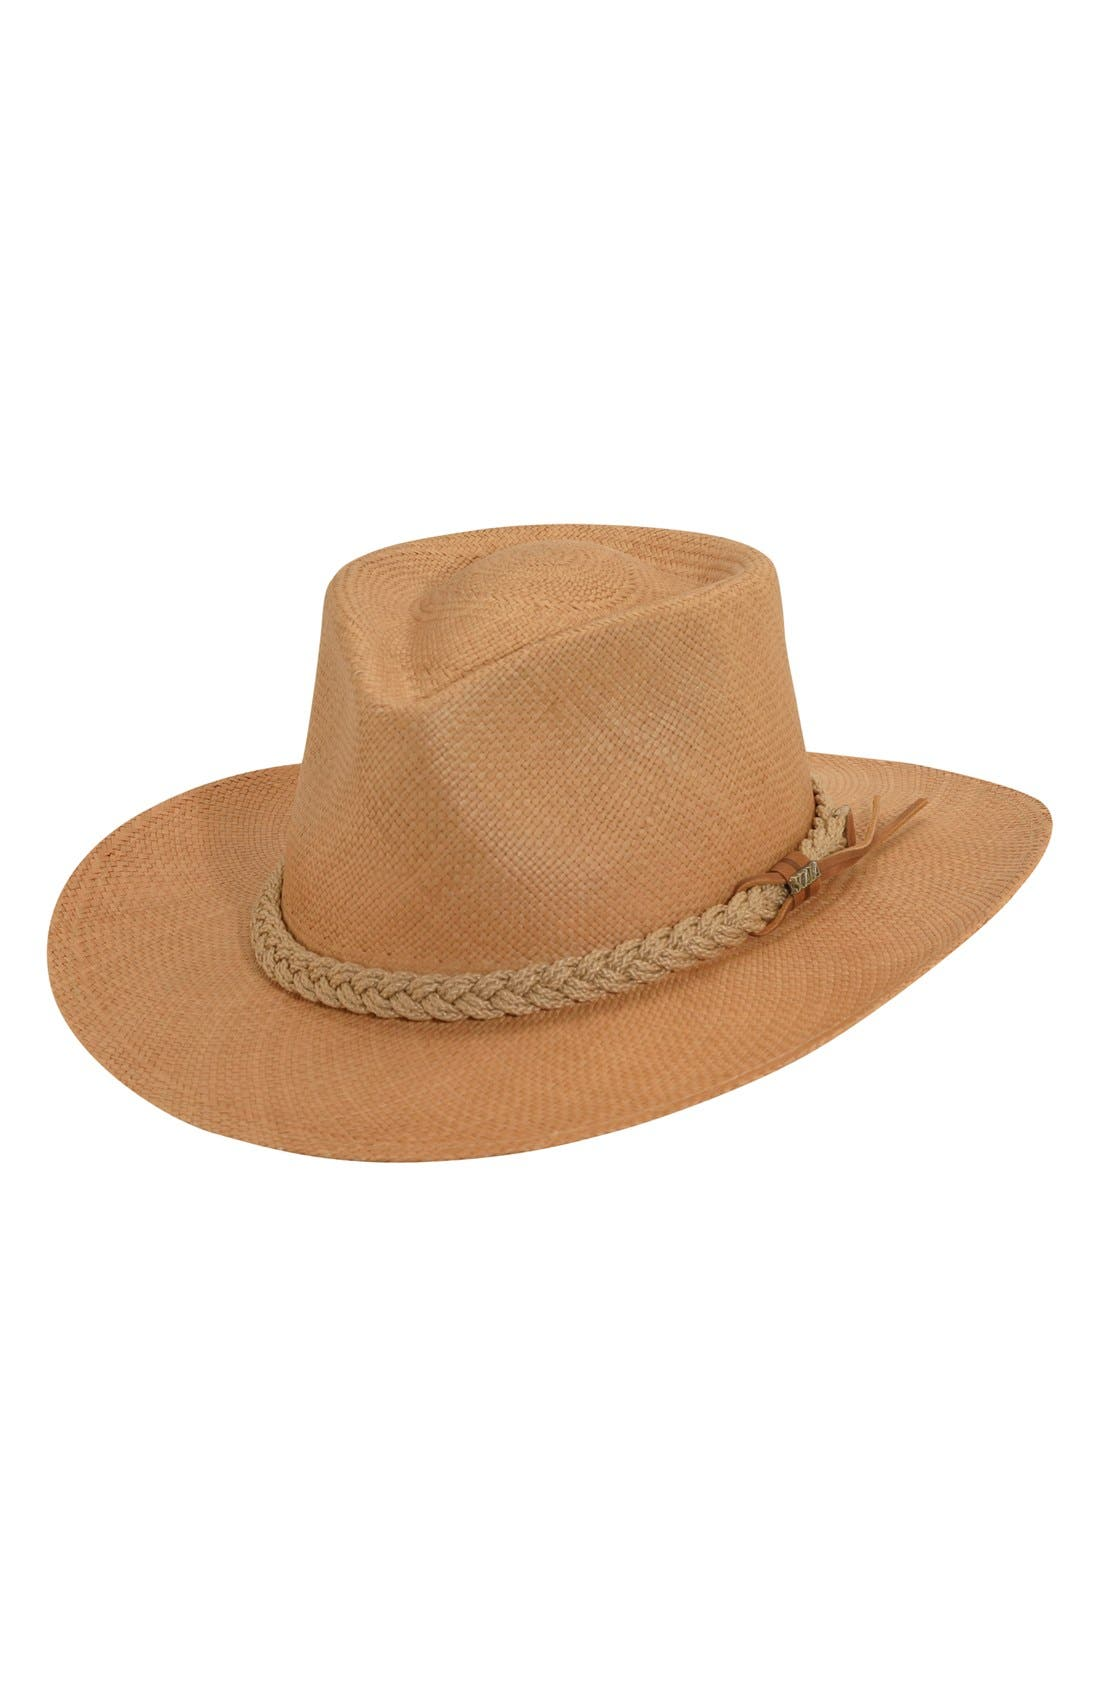 SCALA, Panama Straw Outback Hat, Main thumbnail 1, color, PUTTY